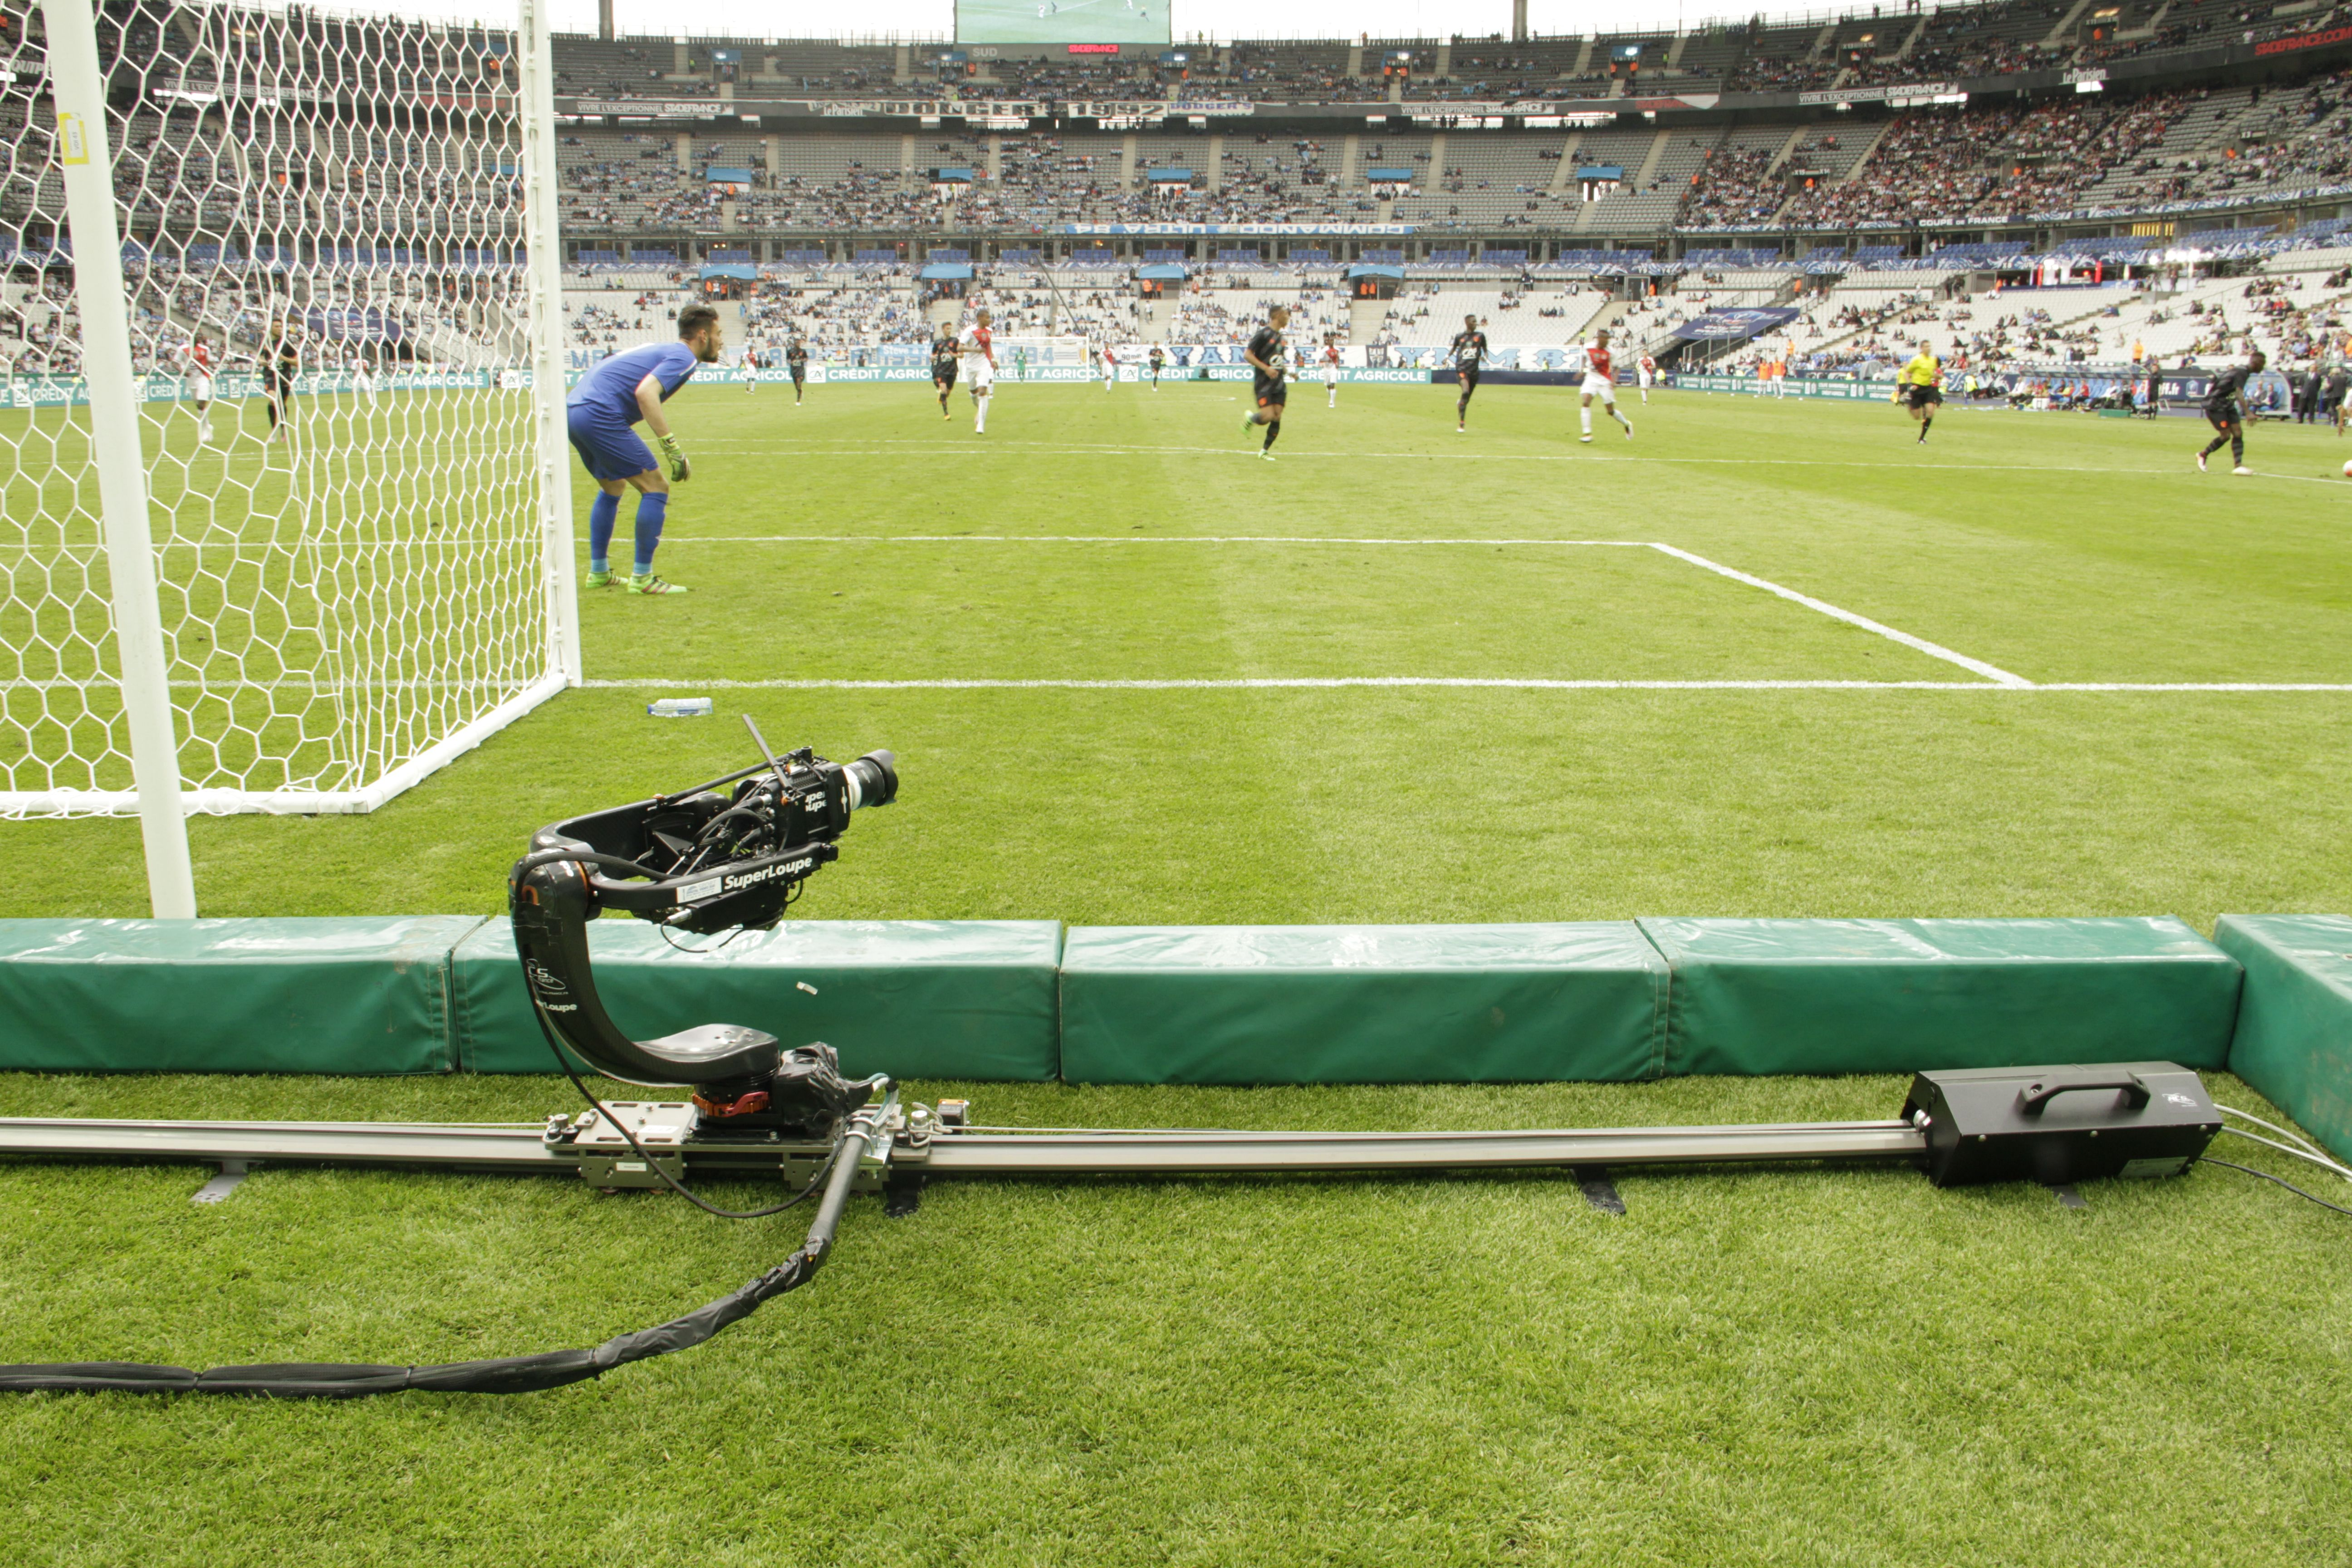 Shotover U1g on the MiniTrack for the french football cup